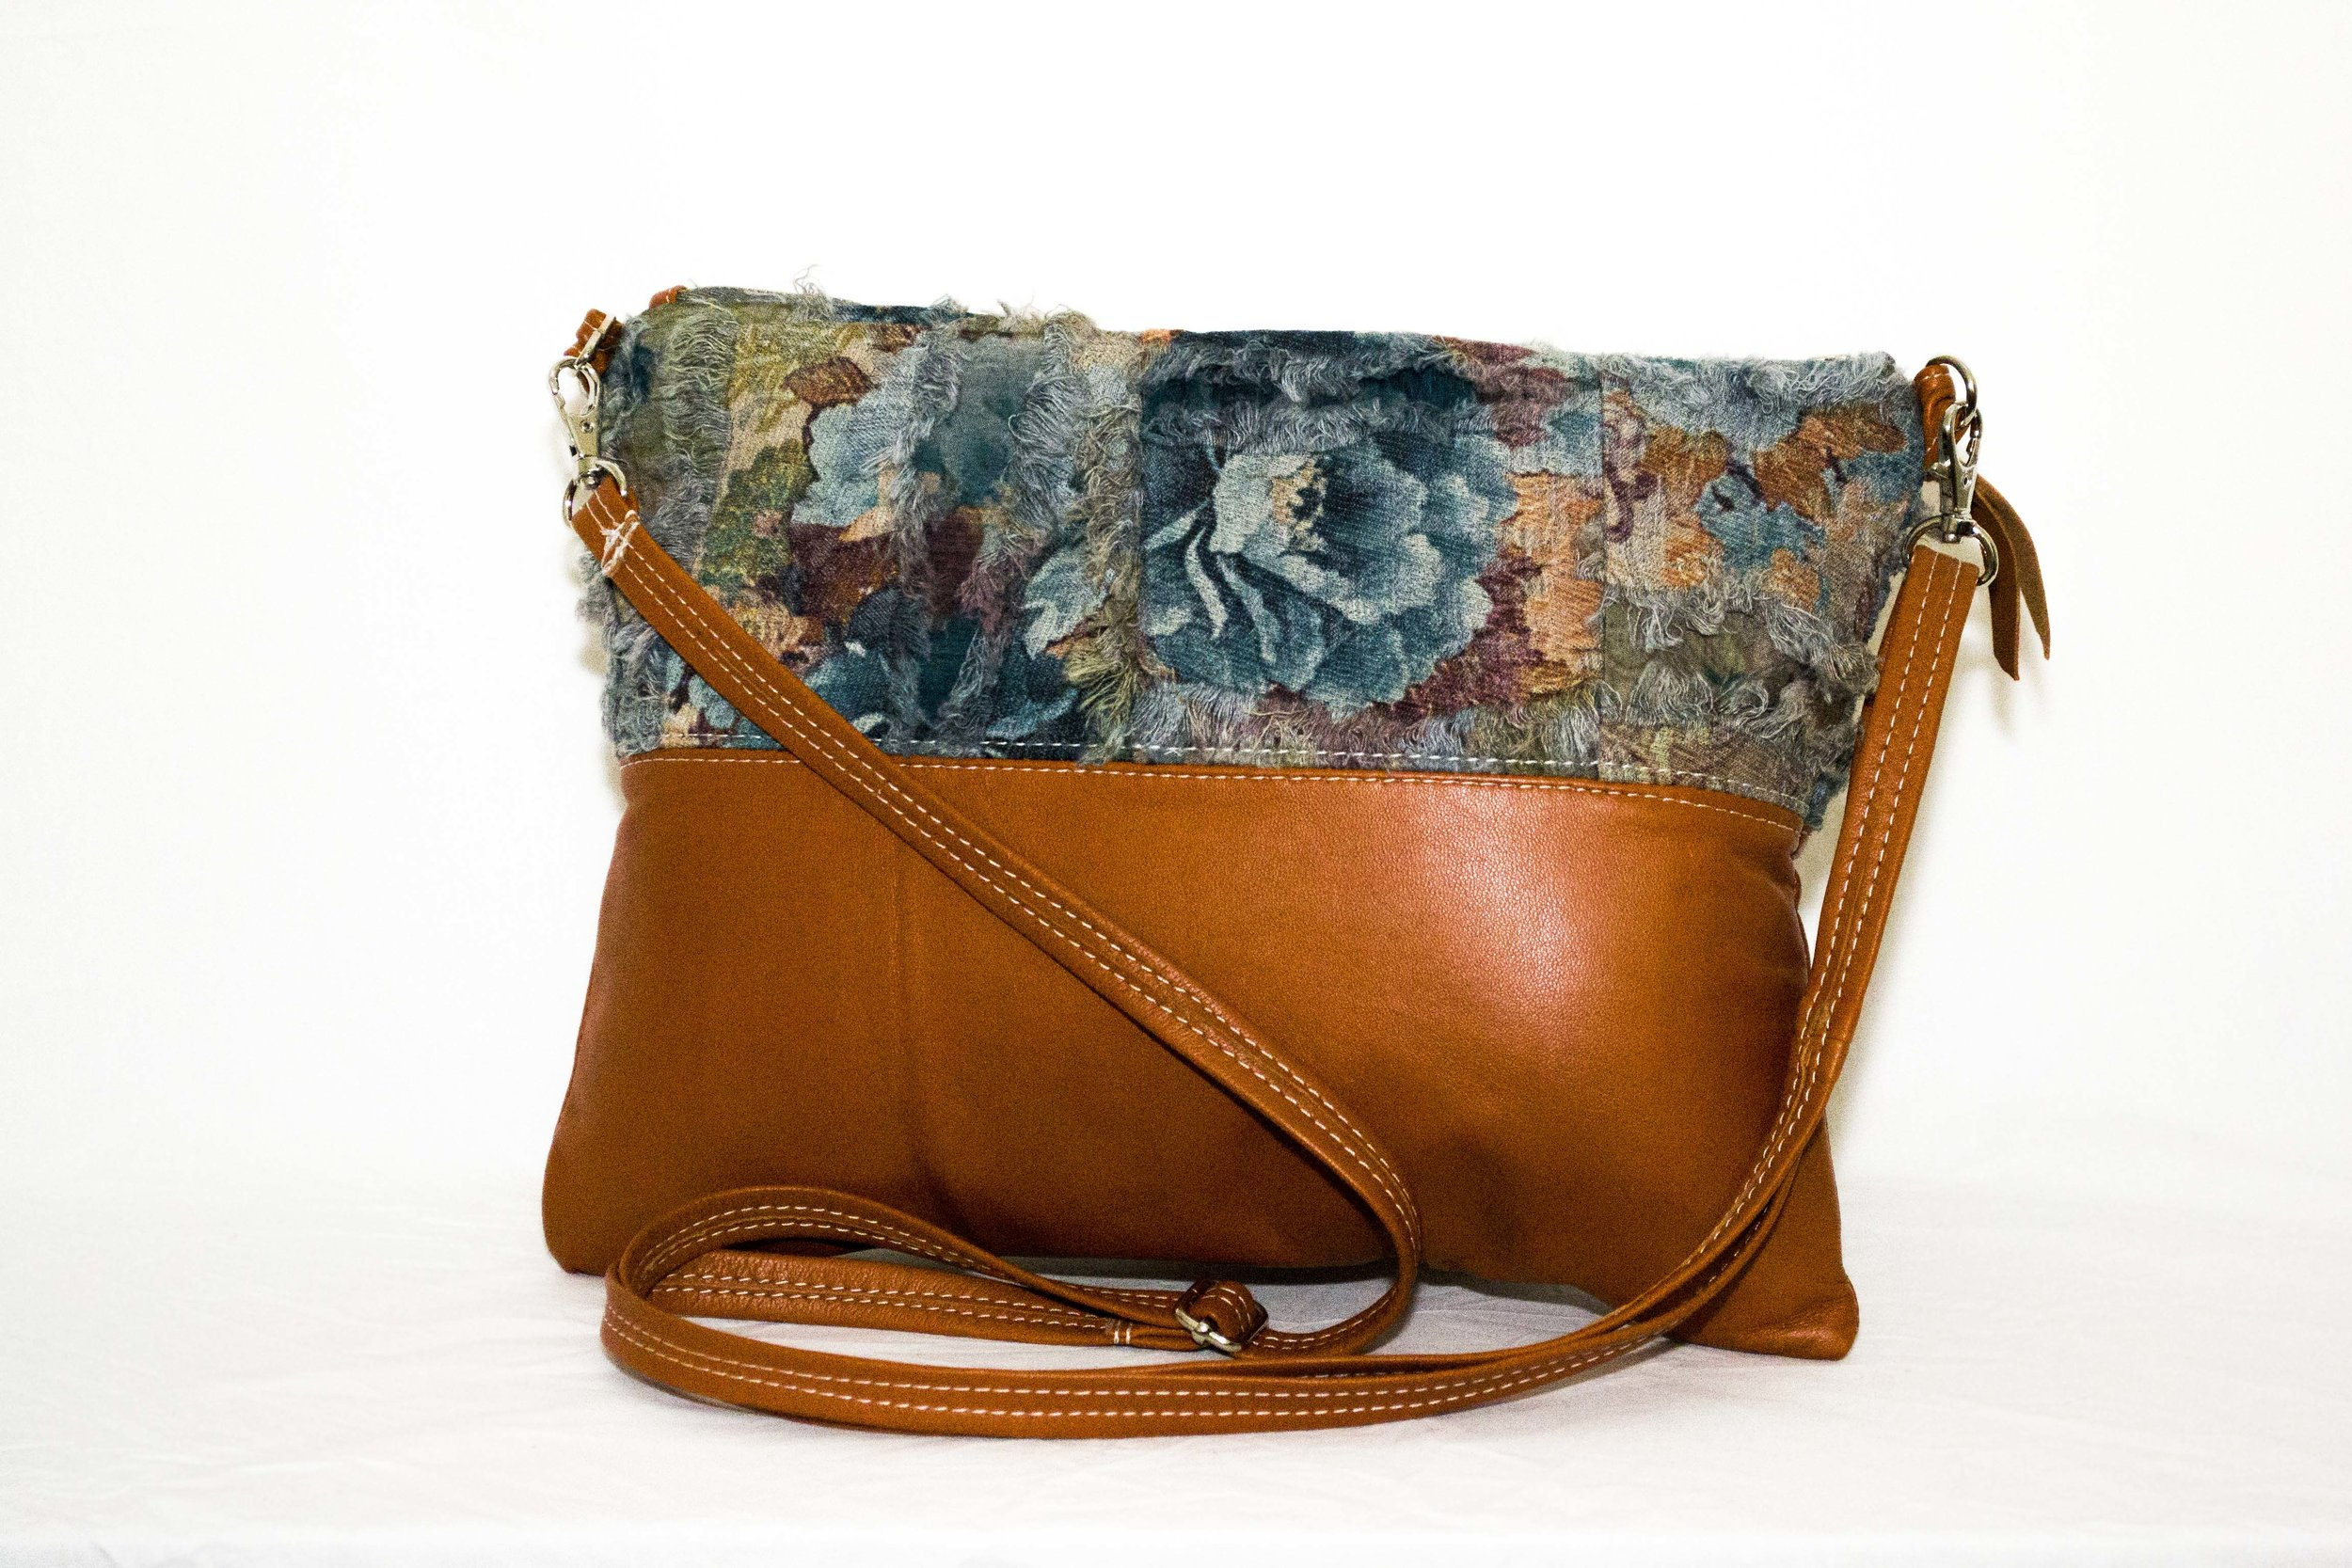 Handbags and Clutches - Rita's handbags and clutches are all individual creations and are made using different leathers and fabrics.They are available in the online shop, at markets that Rita attends and at The Sourpuss Emporium - 375 Camberwell Road, Camberwell VIC 3124.